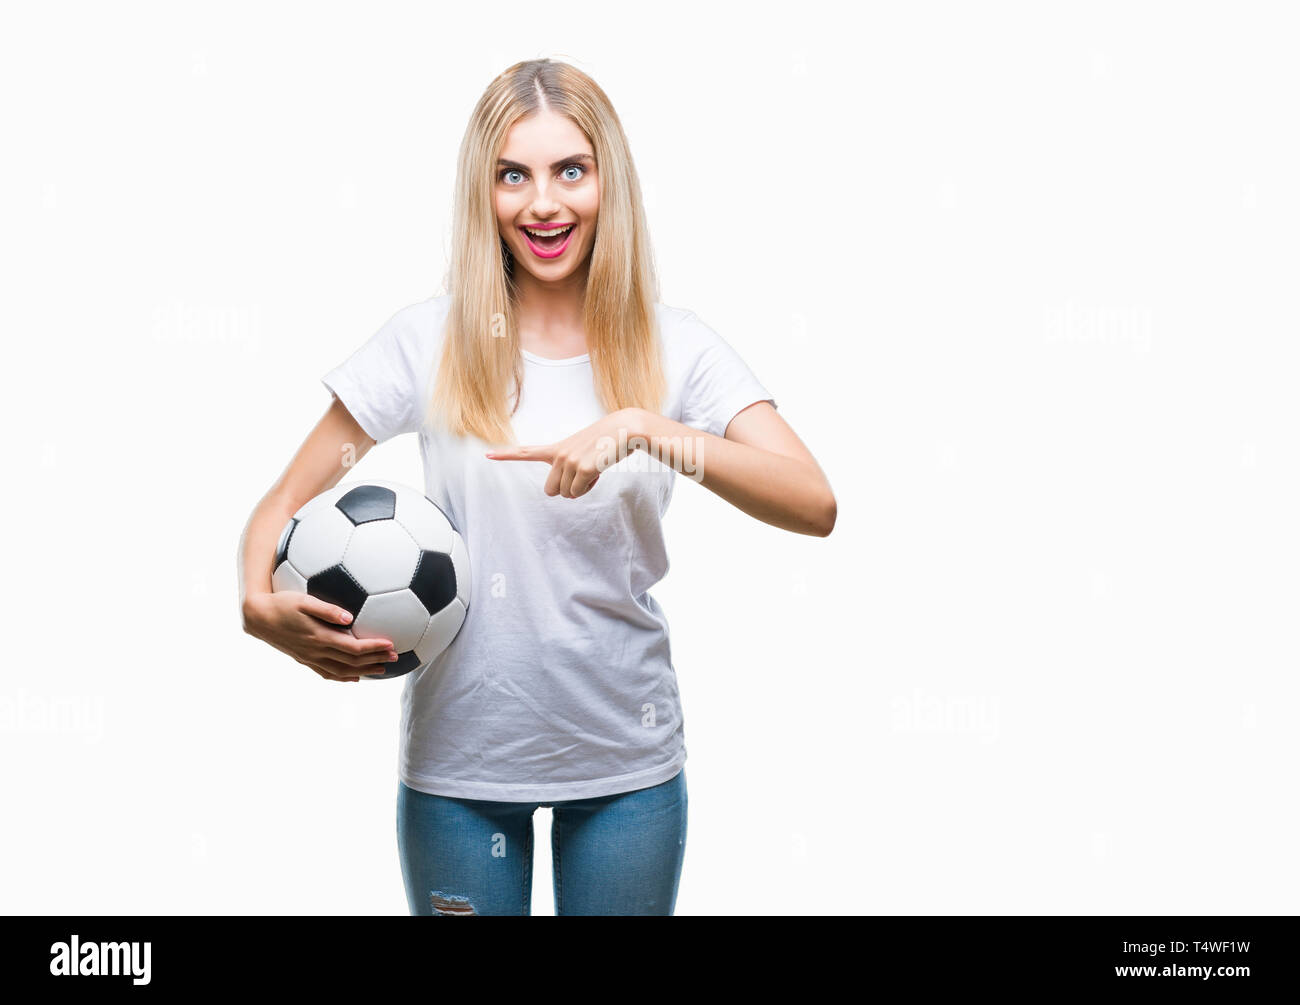 803cc1af0 Young beautiful blonde woman holding soccer ball over isolated background  very happy pointing with hand and finger